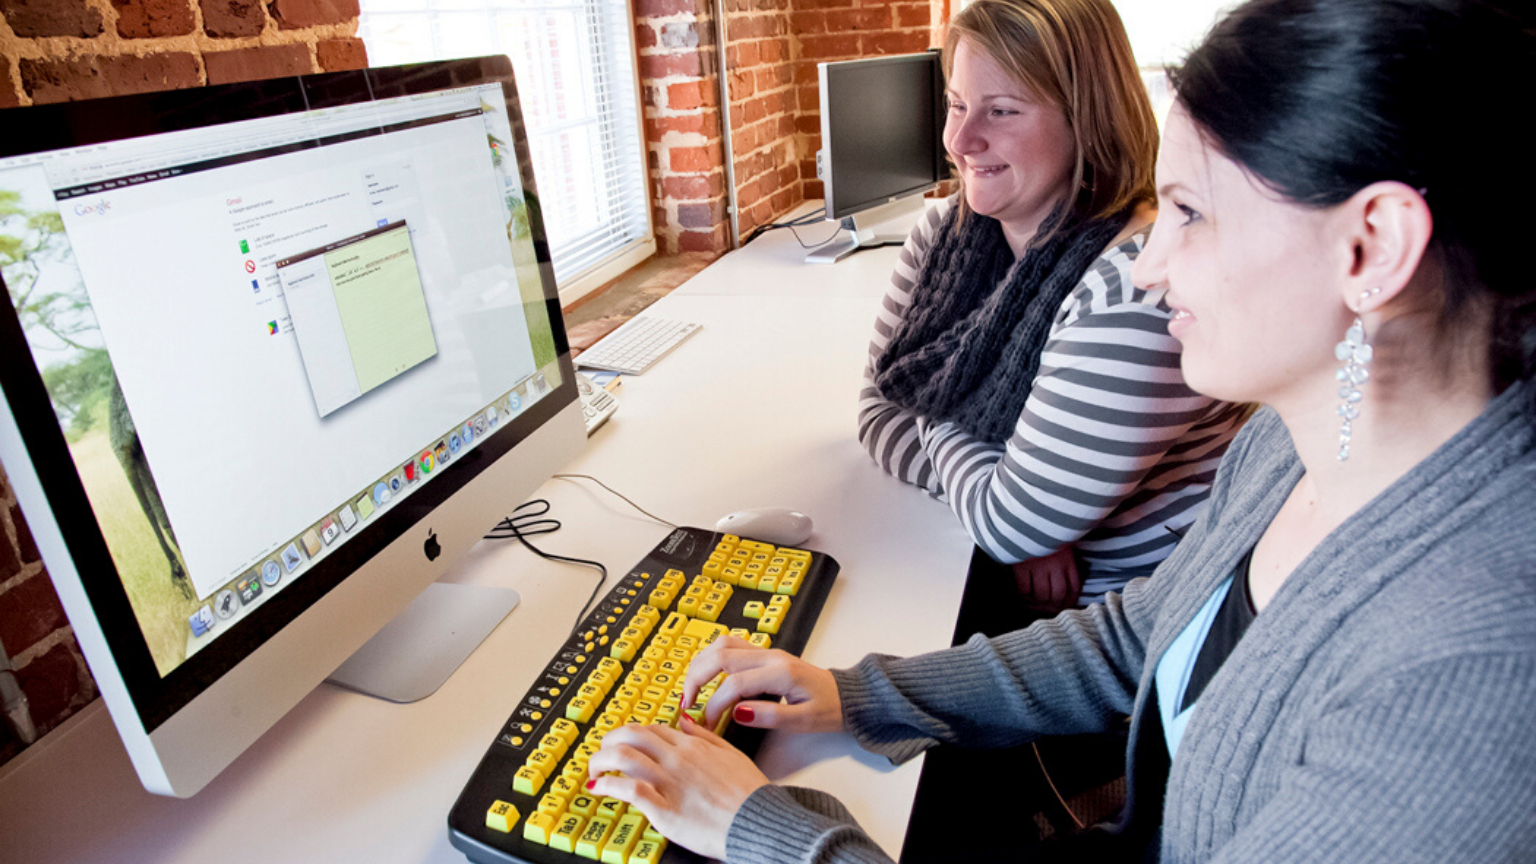 Two women using a computer with a high contrast keyboard